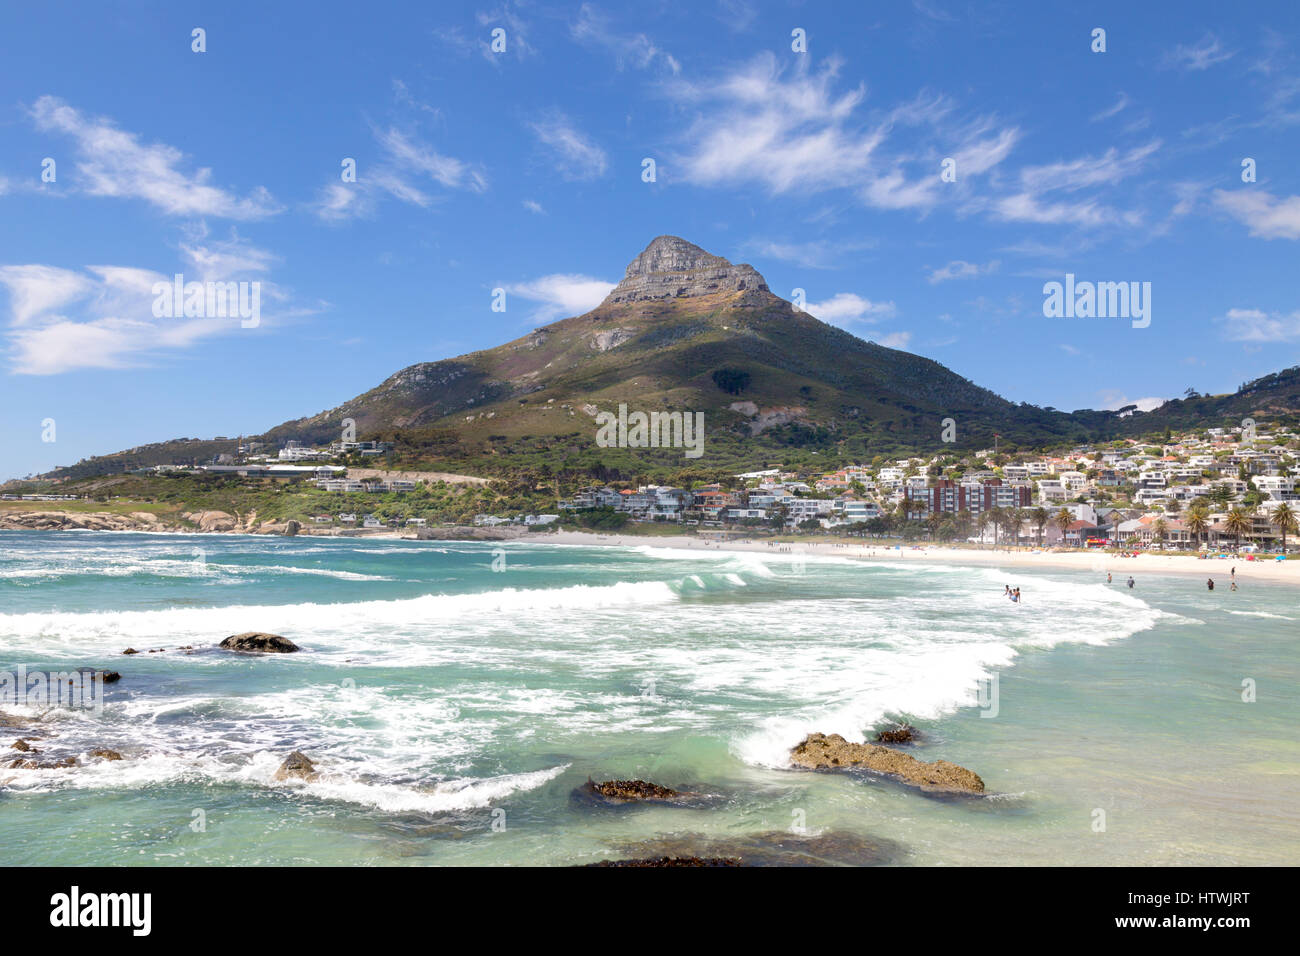 Cape Town Camps Bay beach South Africa - with the Lions Head mountain, South Africa - Stock Image